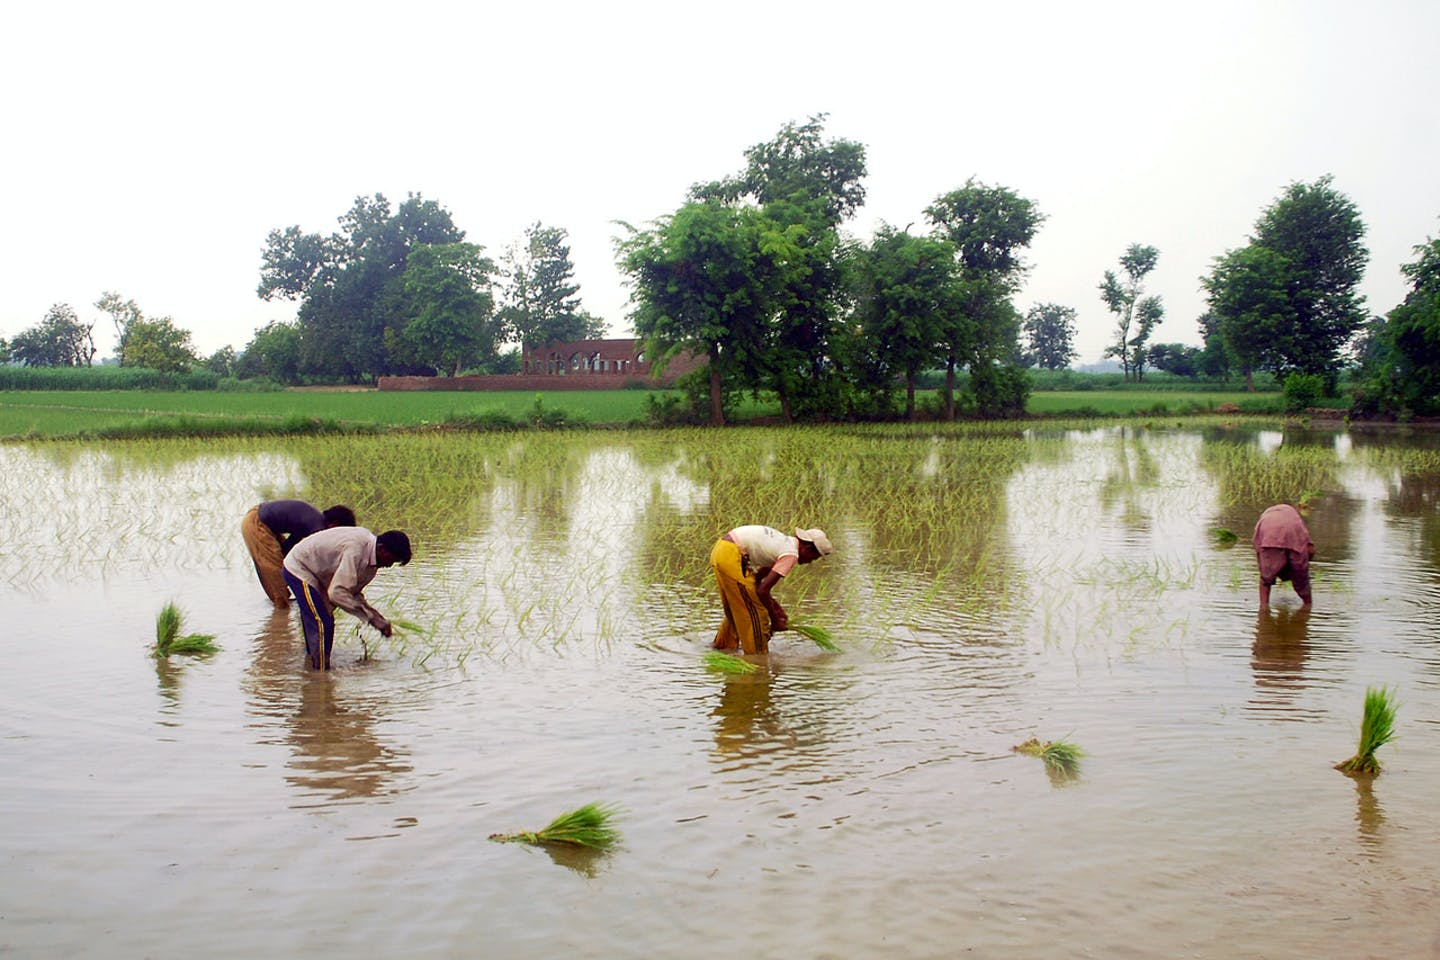 Farmers in Pakistan working in the rice fields